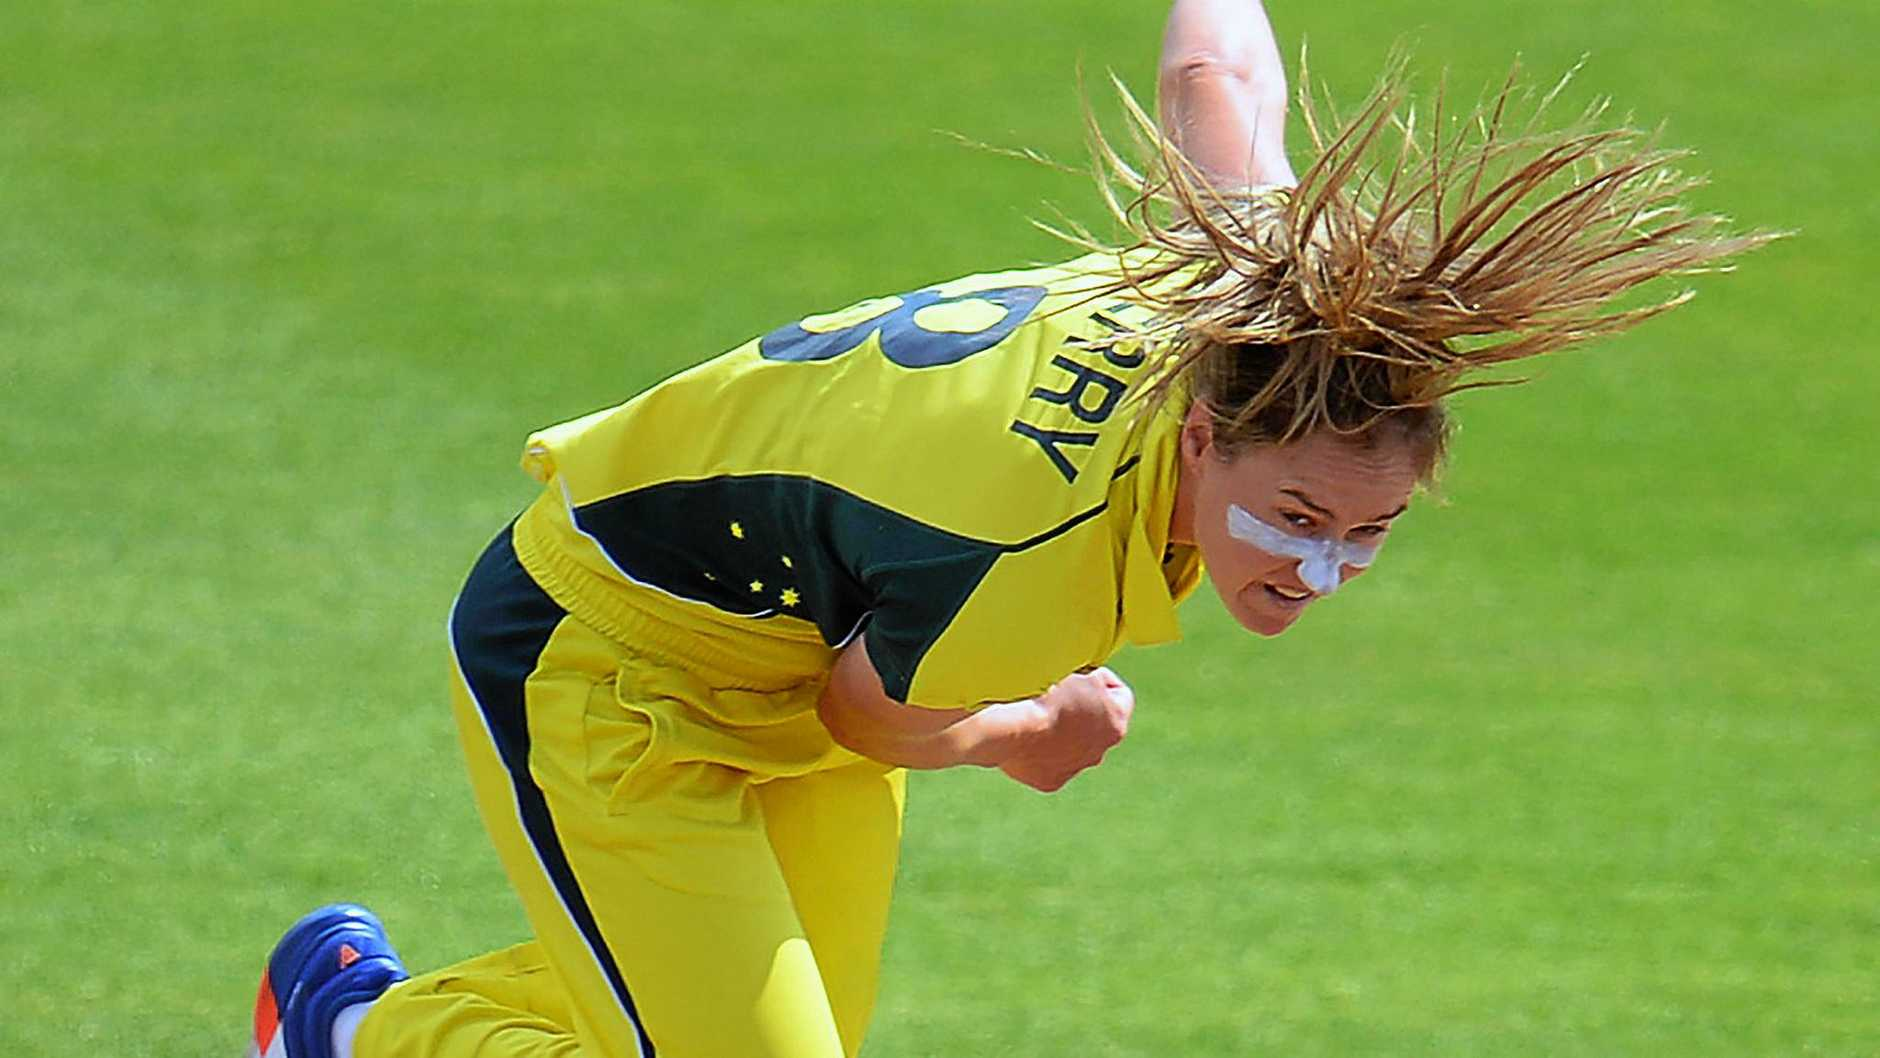 Allrounder Ellyse Perry starred with bat and ball in Australia's World Cup win over South Africa.